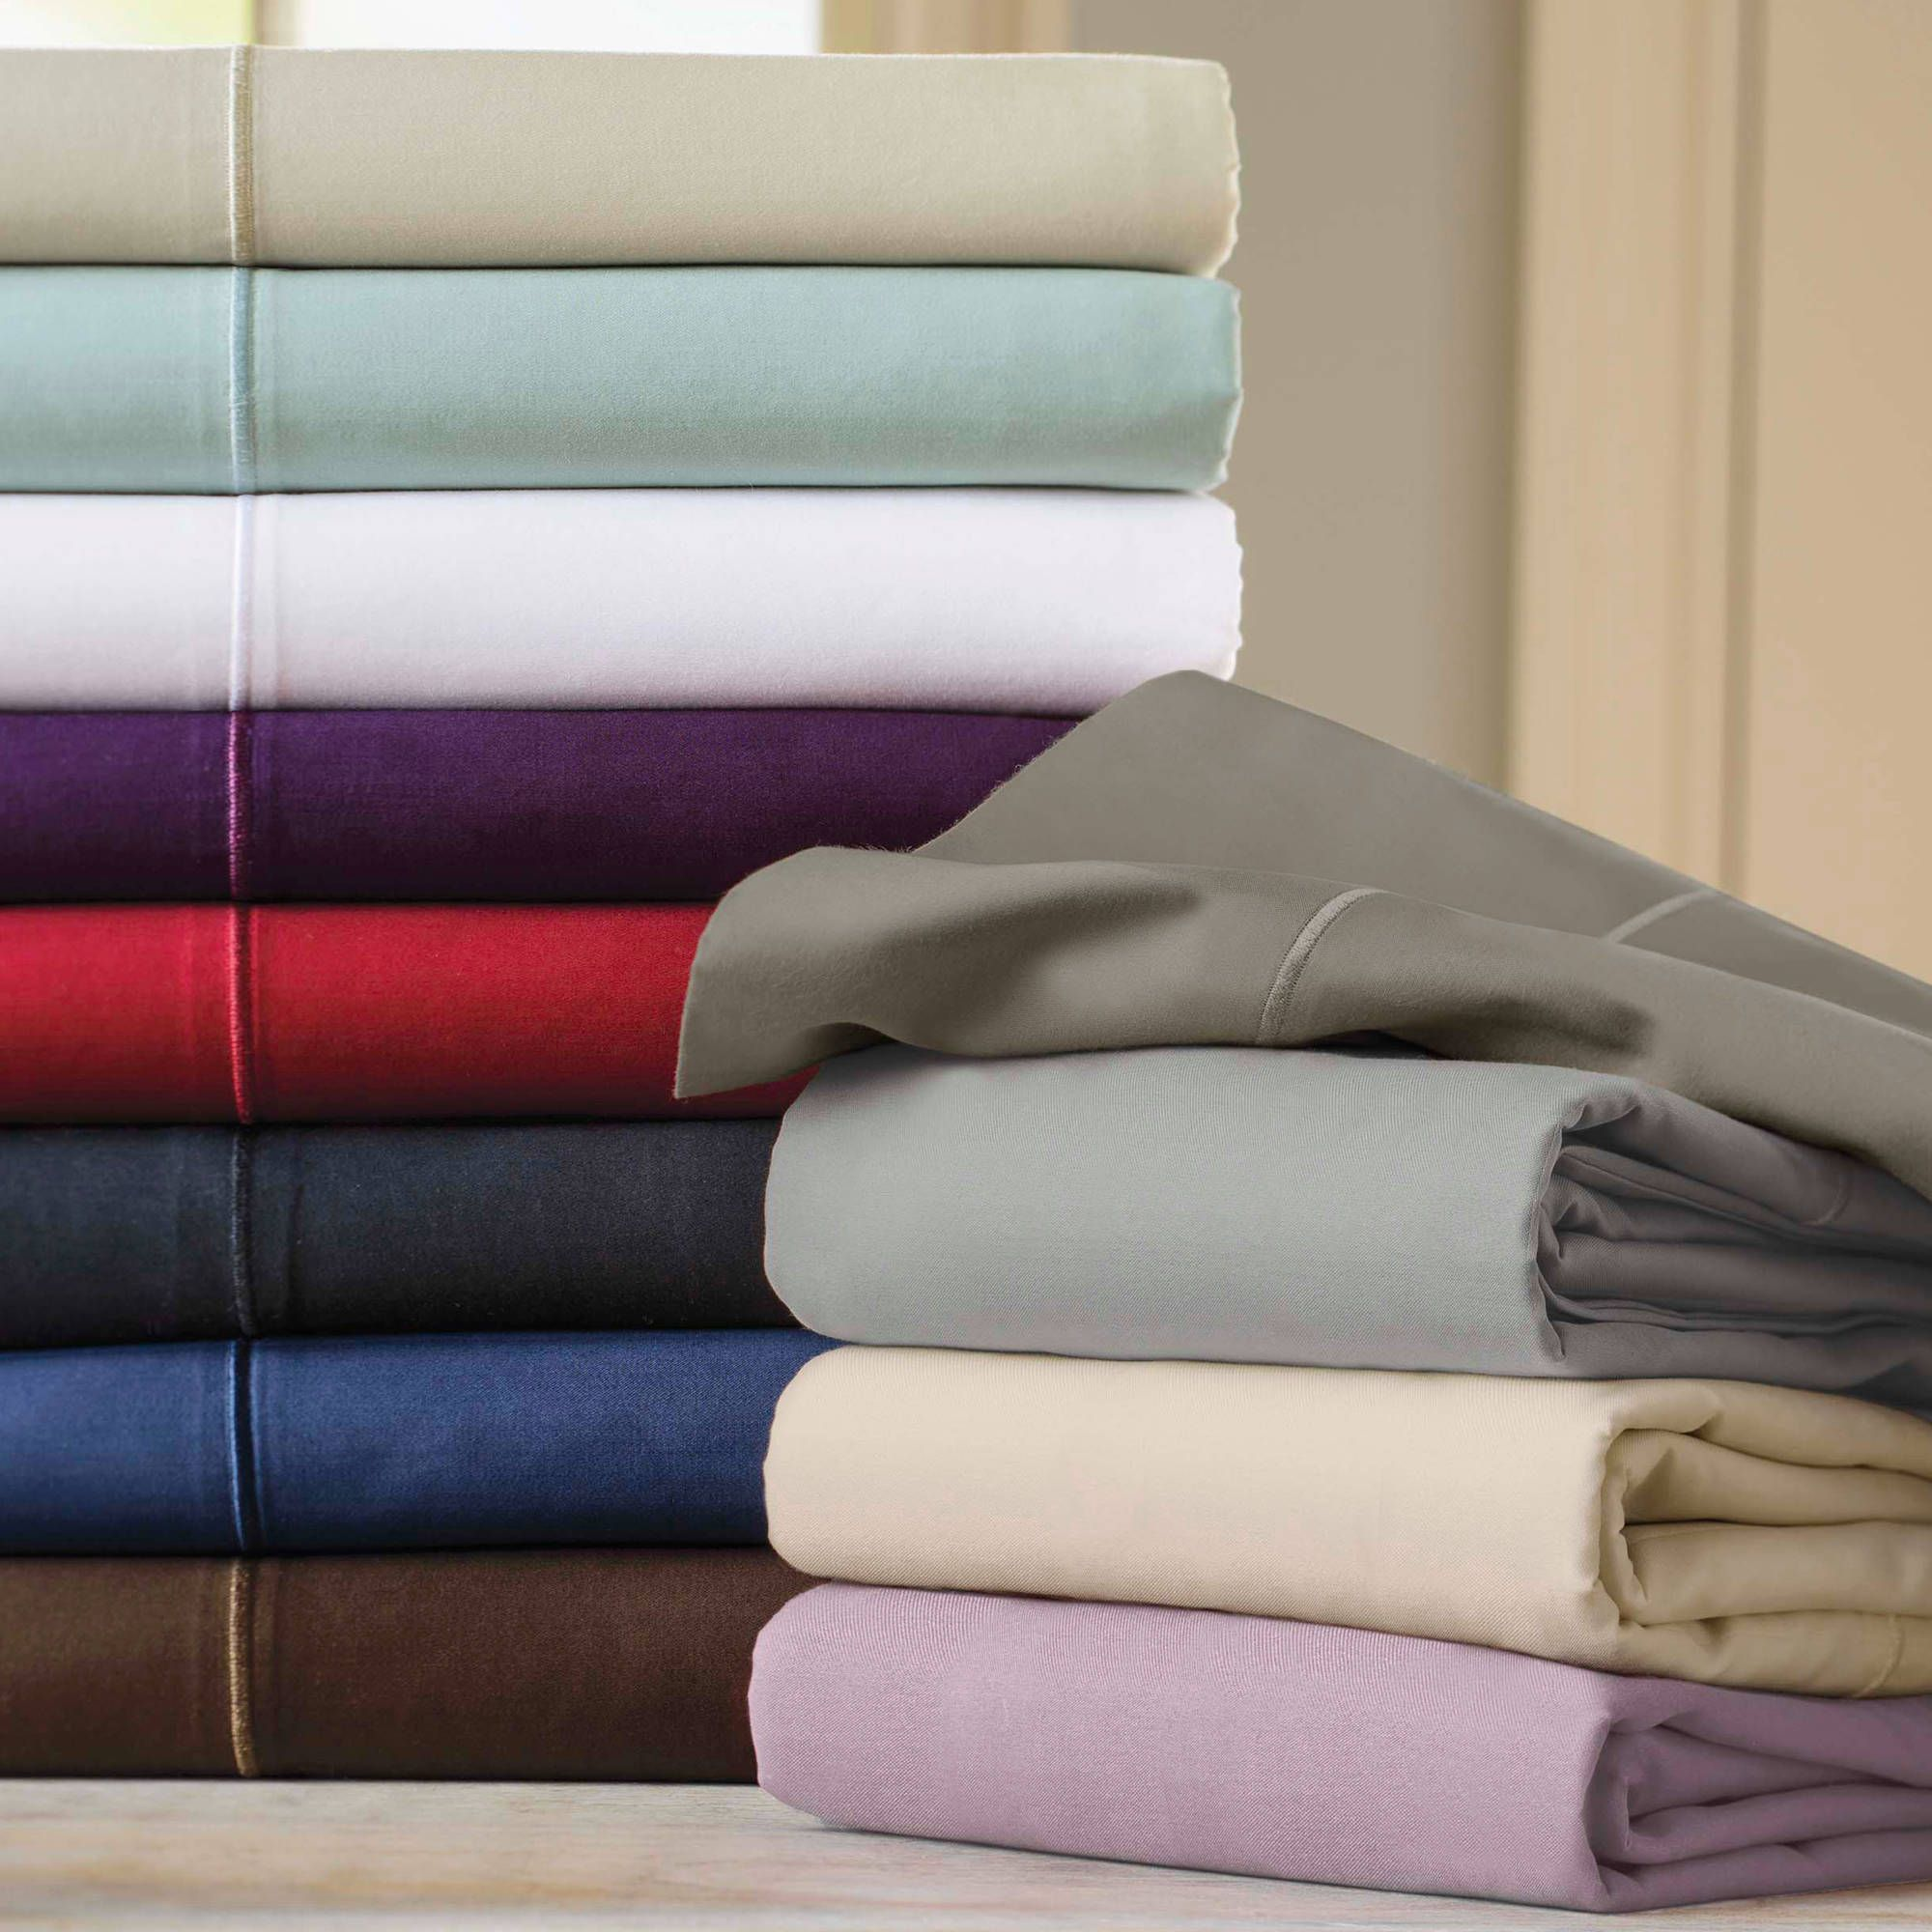 e5c4428185062ffe7db74c2f318f4a82 - Better Homes And Gardens 400 Thread Count Solid Egyptian Cotton